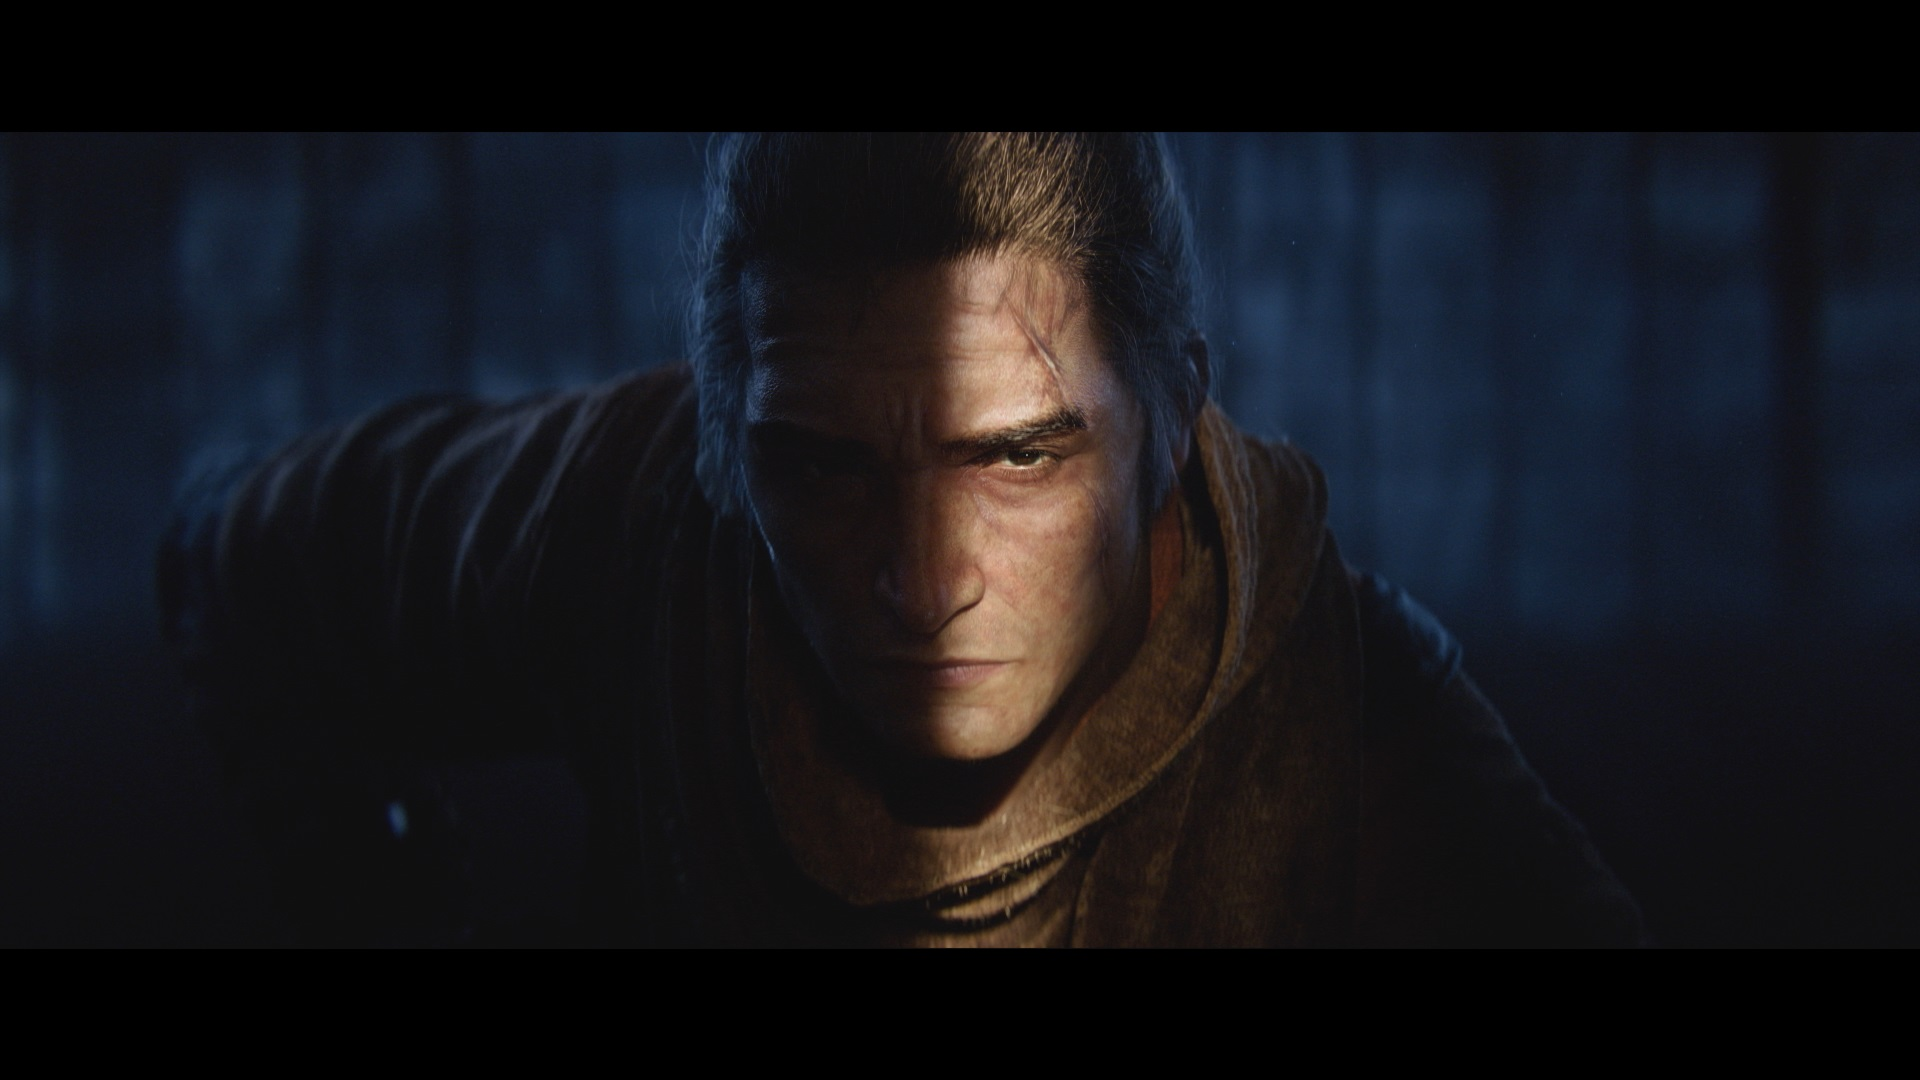 Sekiro Shadows Die Twice story preview trailer